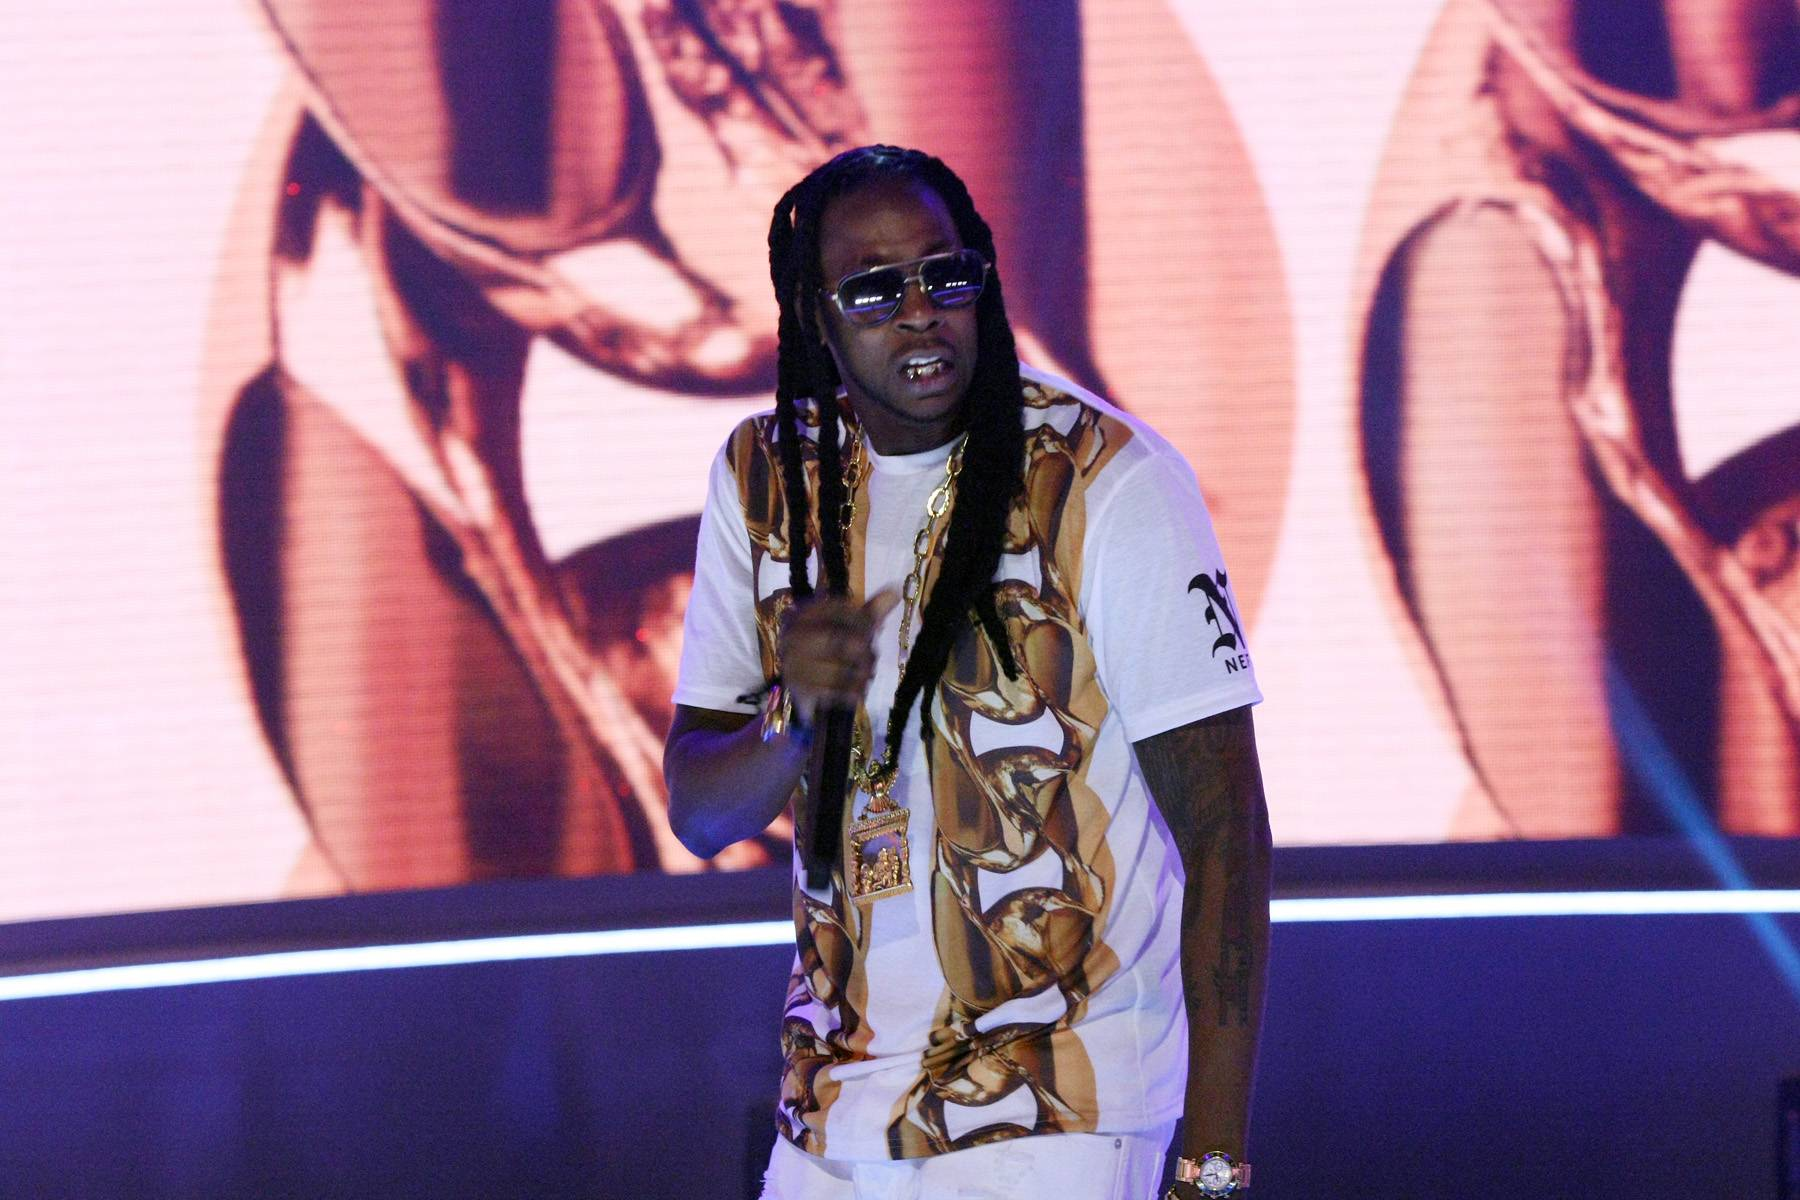 2 Chainz Reigns - We were introduced to 2 Chainz (the solo artist) a little over a year ago and we haven't looked back since. With crazy lyrics, energy on stage that makes him electric and a fashion sense that has style enthusiasts everywhere taking note, it's safe to say that 2 Chainz reigns!  Don't miss the ATLien tonight on 106 with Jason DeRulo!(Photo: Splash News)